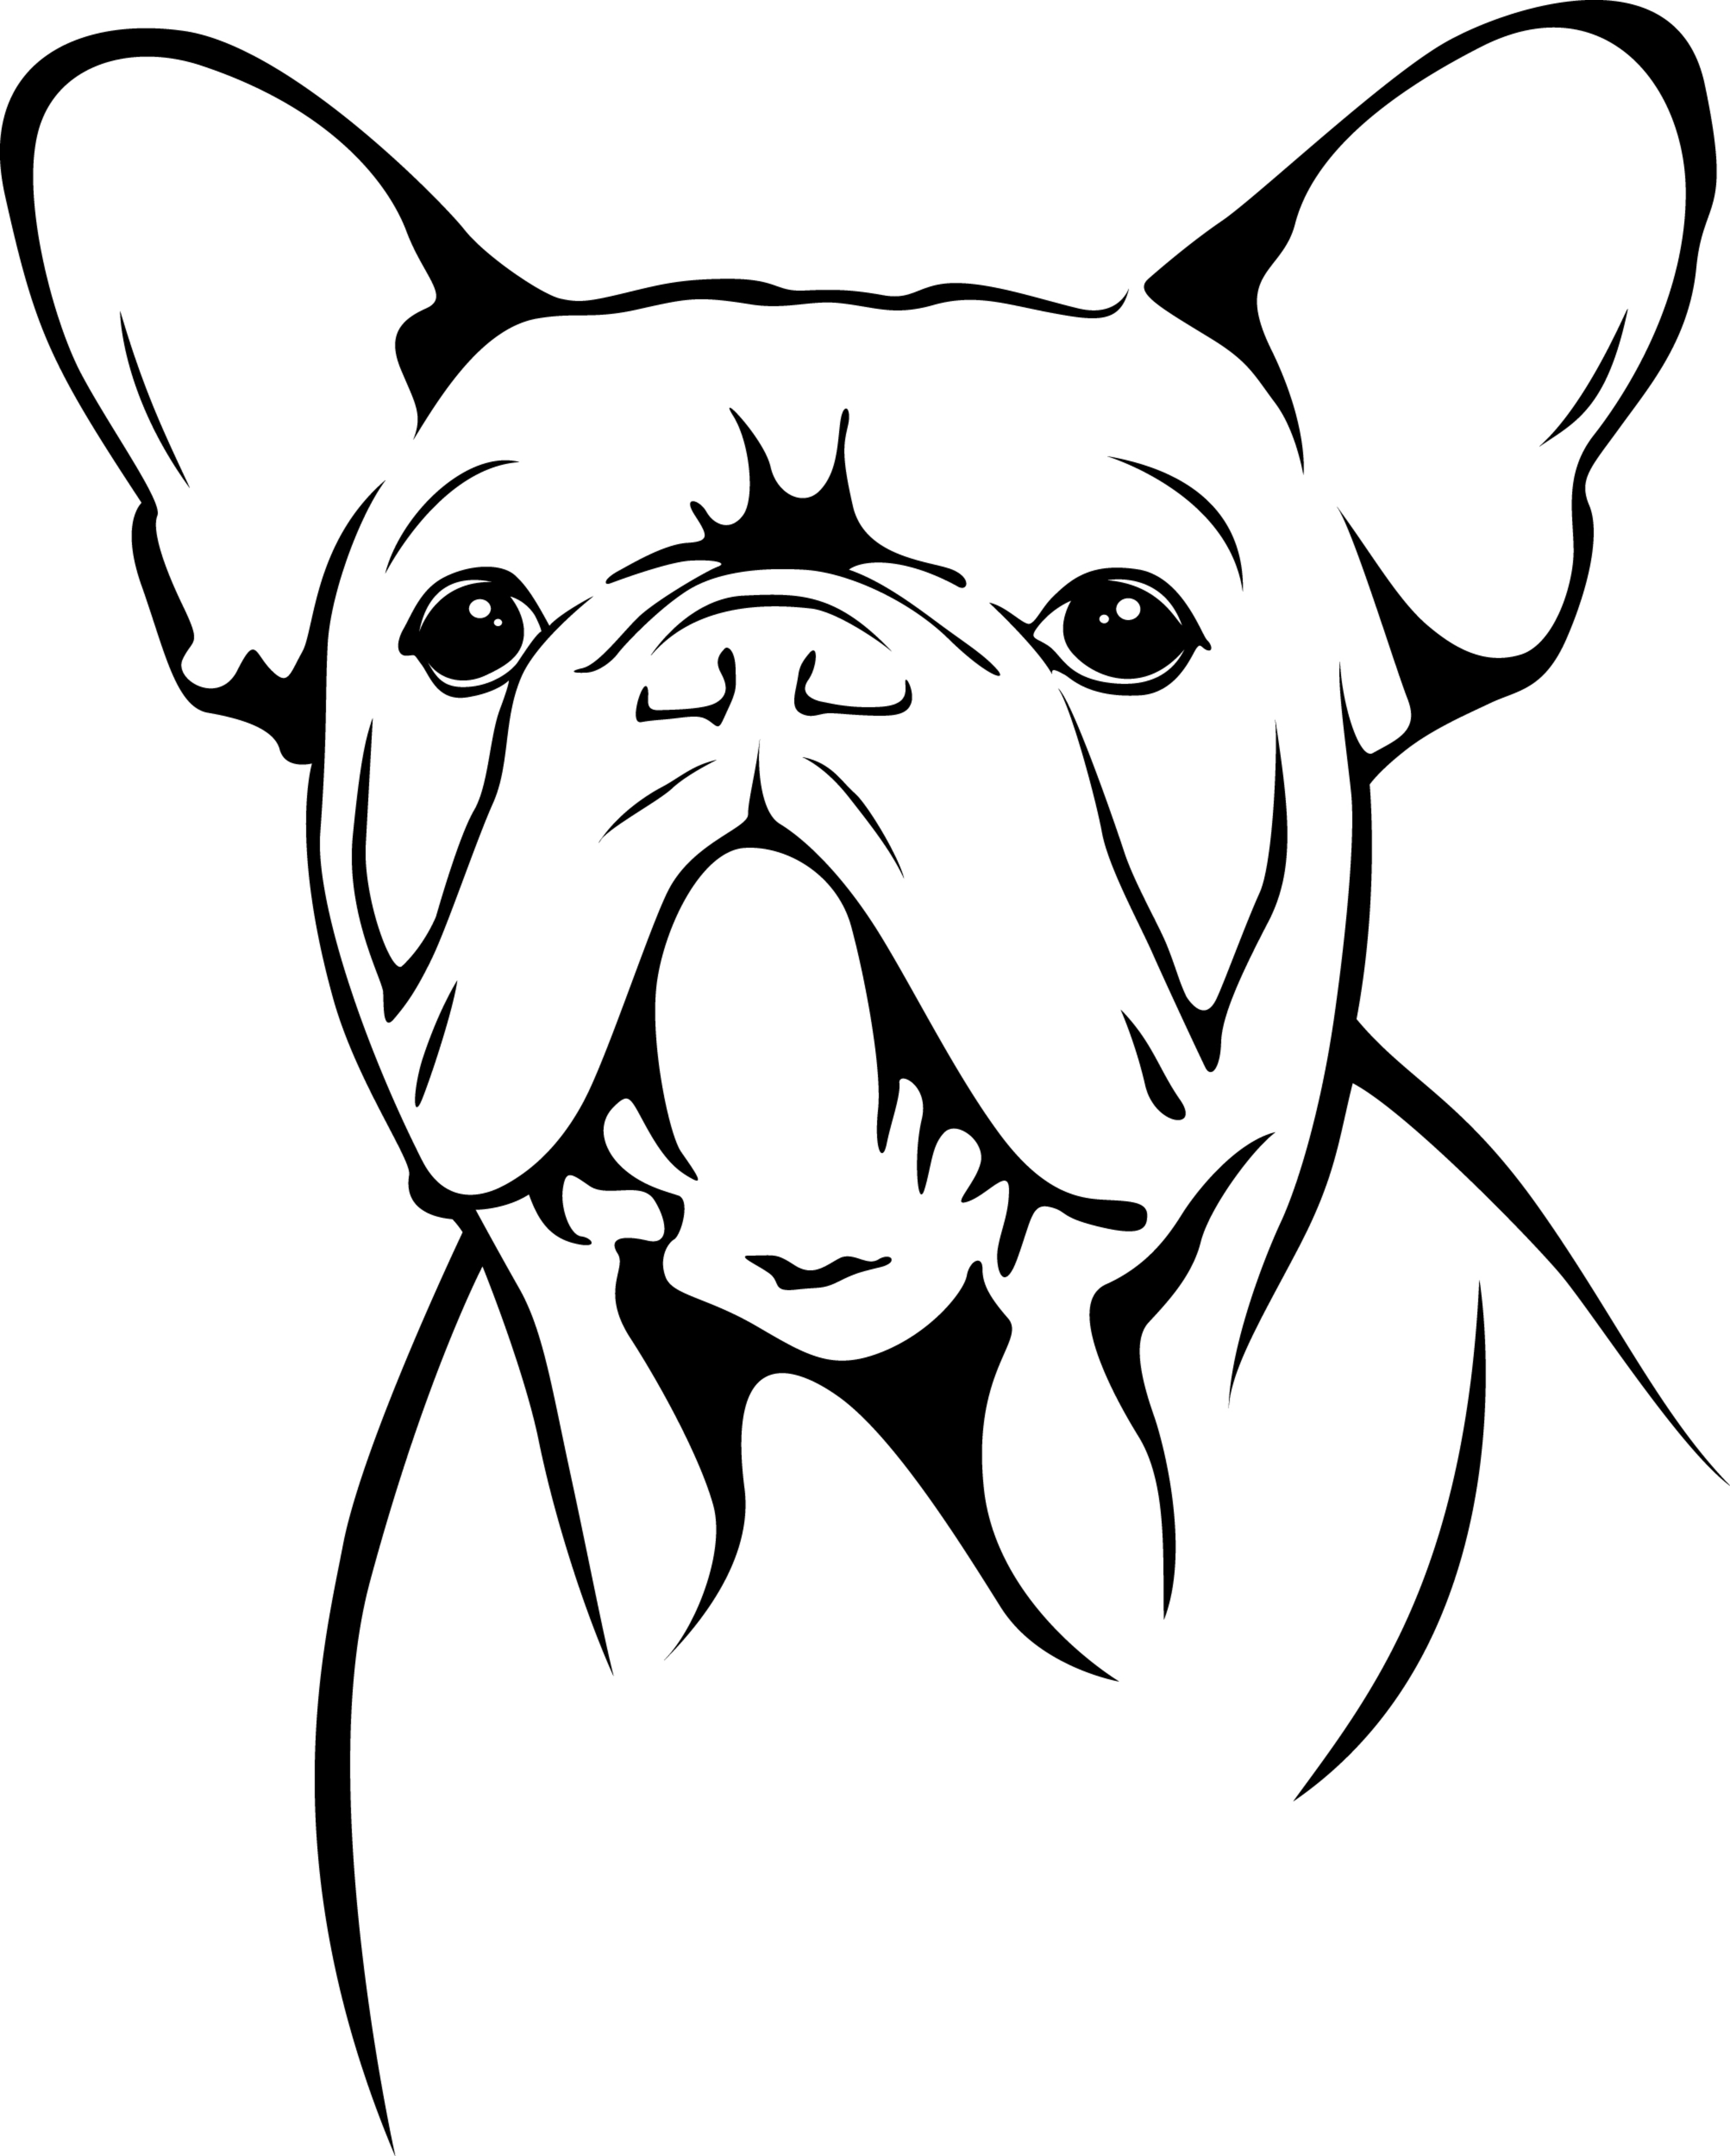 Bulldog Coloring Pages At Getdrawings Com Free For Personal Use